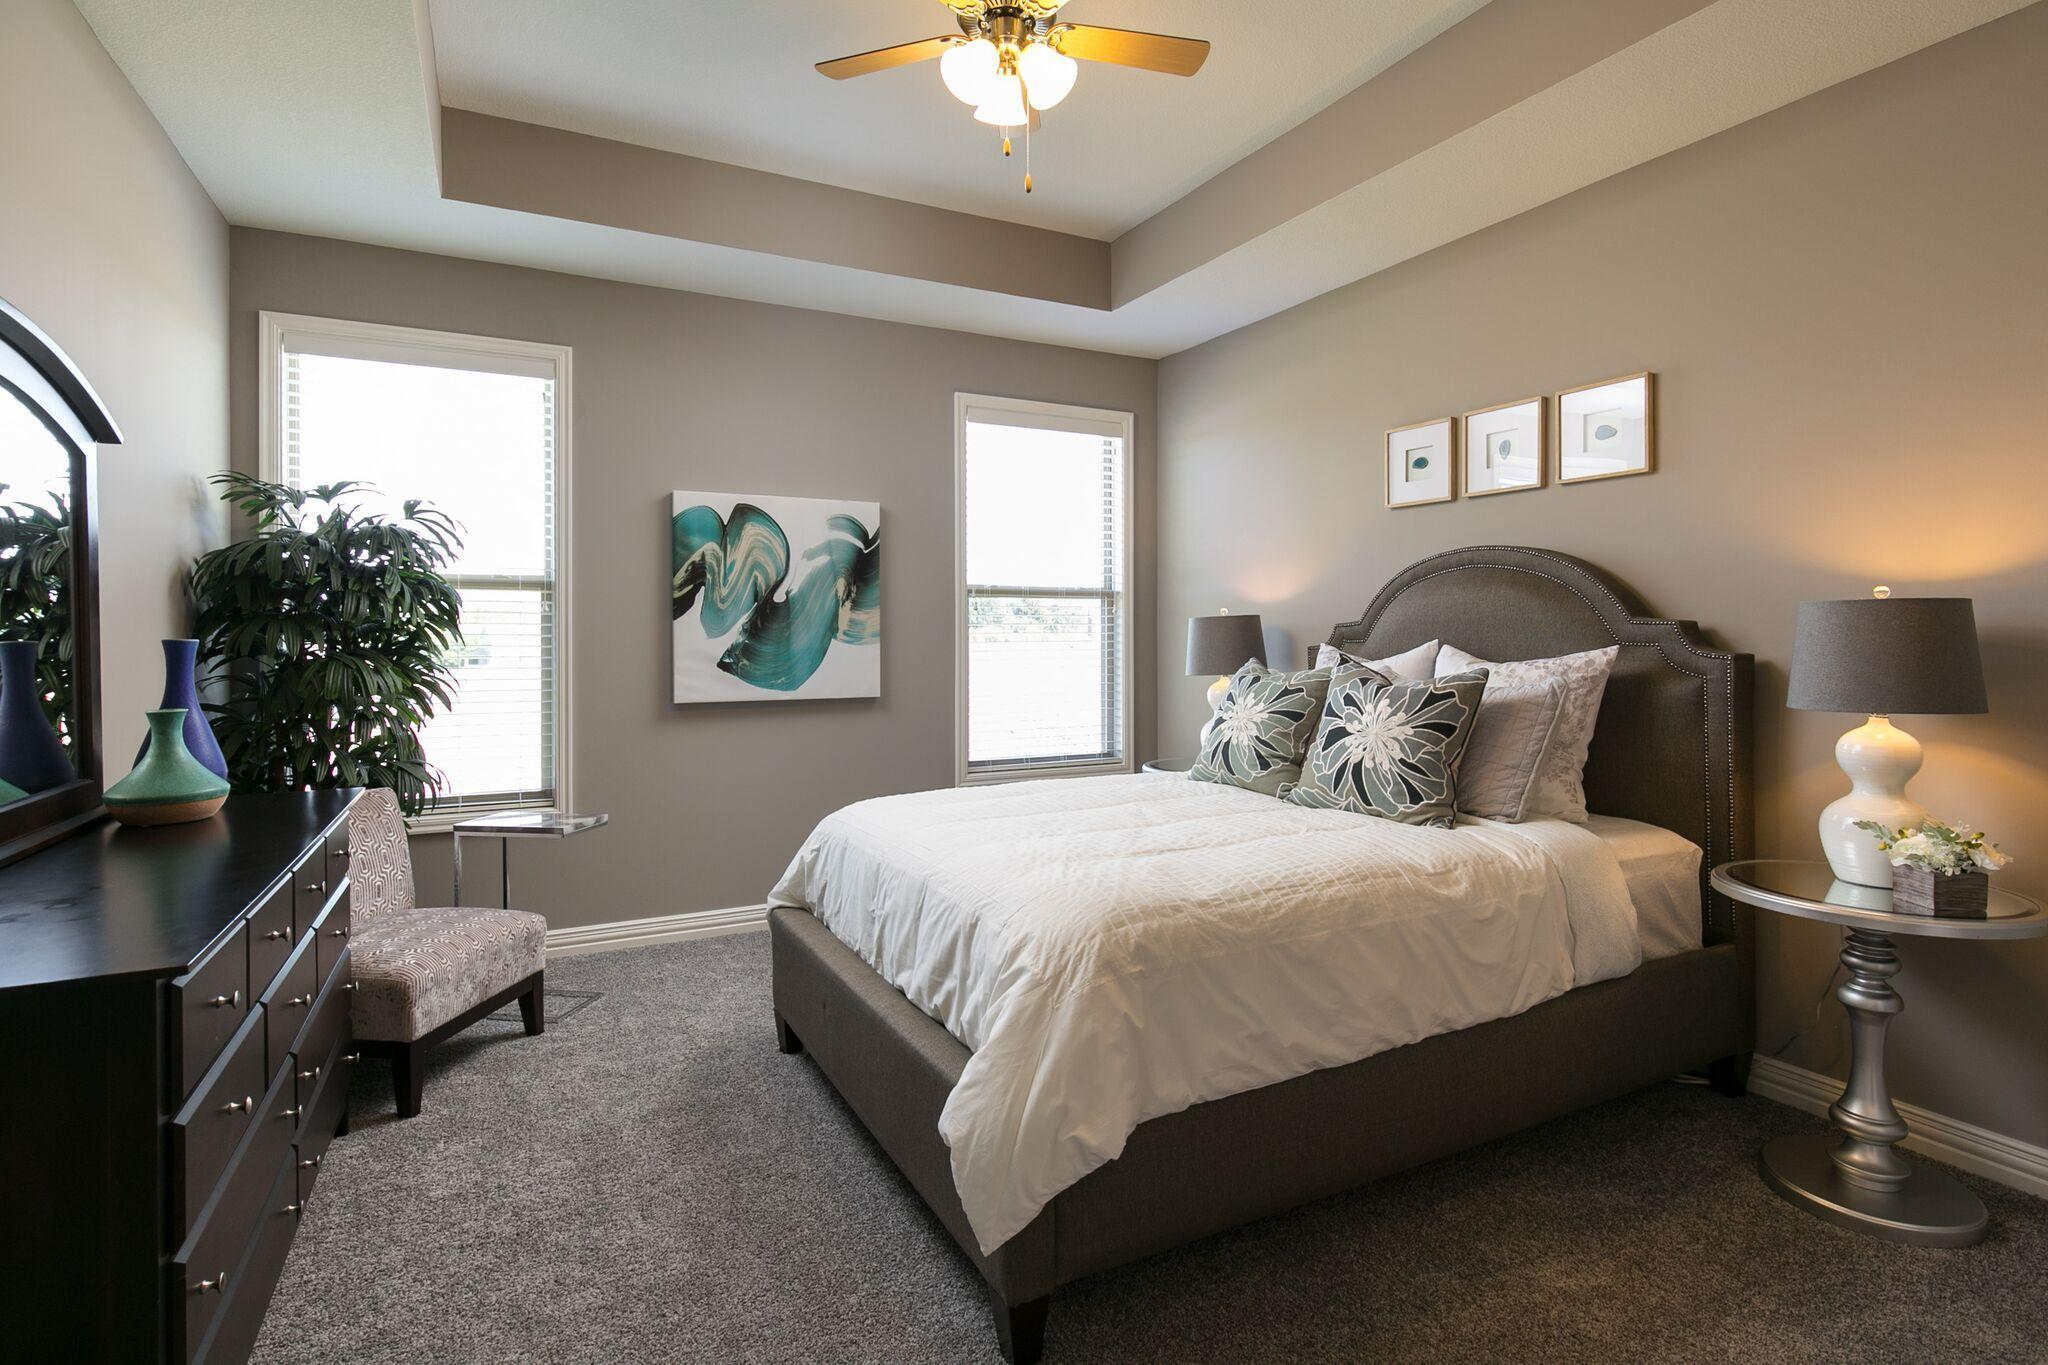 Bedroom featured in the Bayfield By Summit Homes in Kansas City, MO